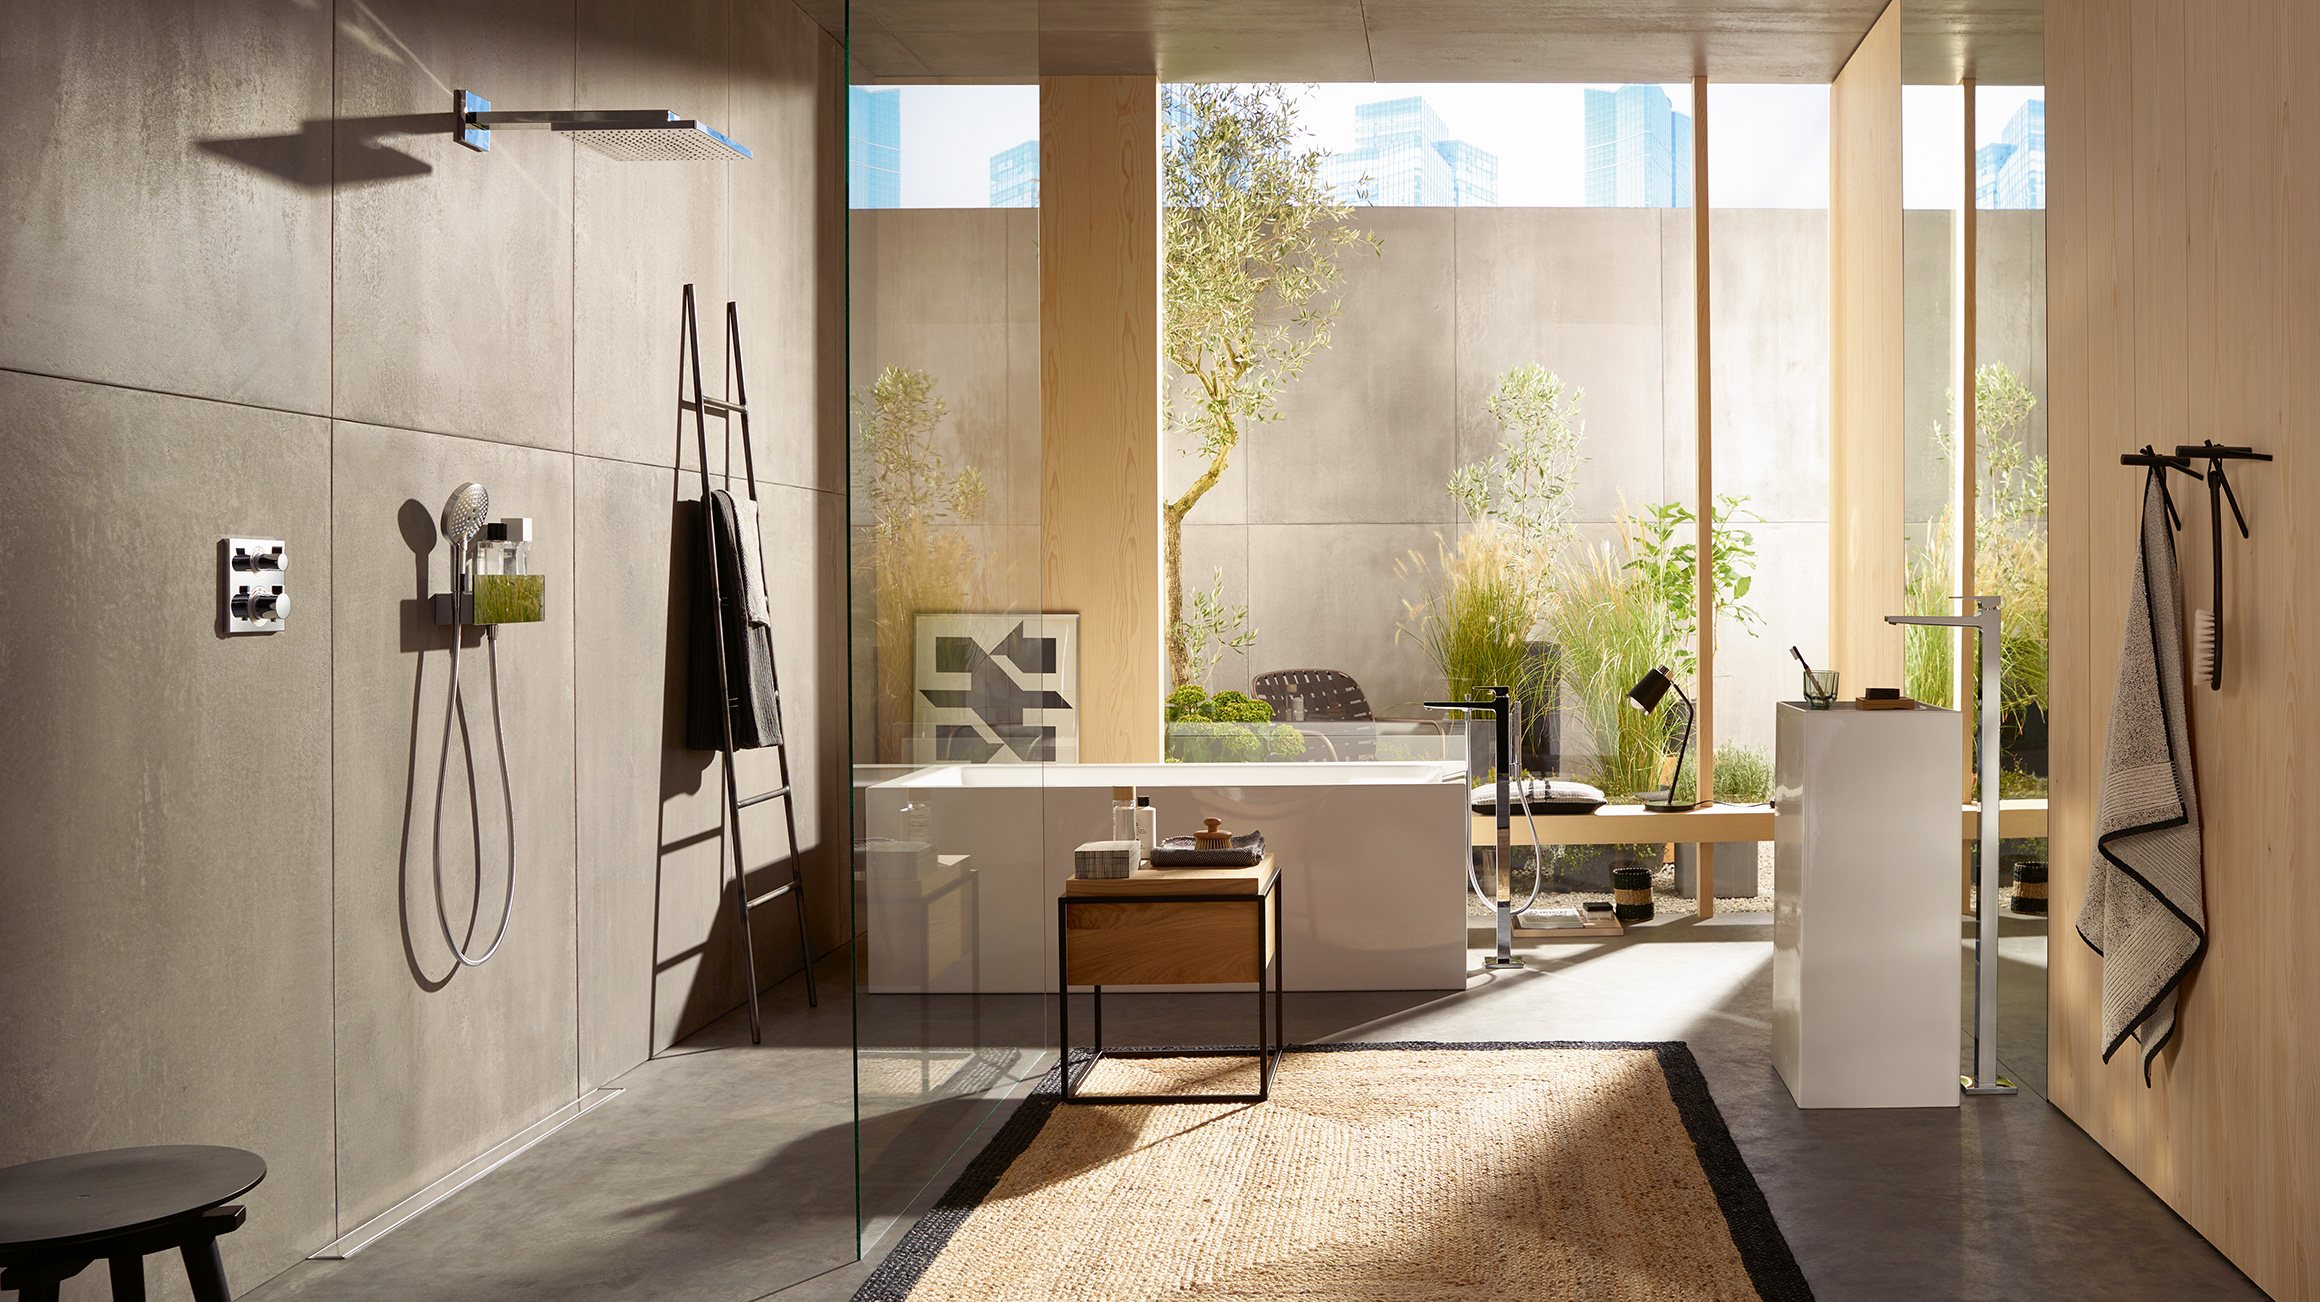 Exposed concrete and rough walls in a concrete look